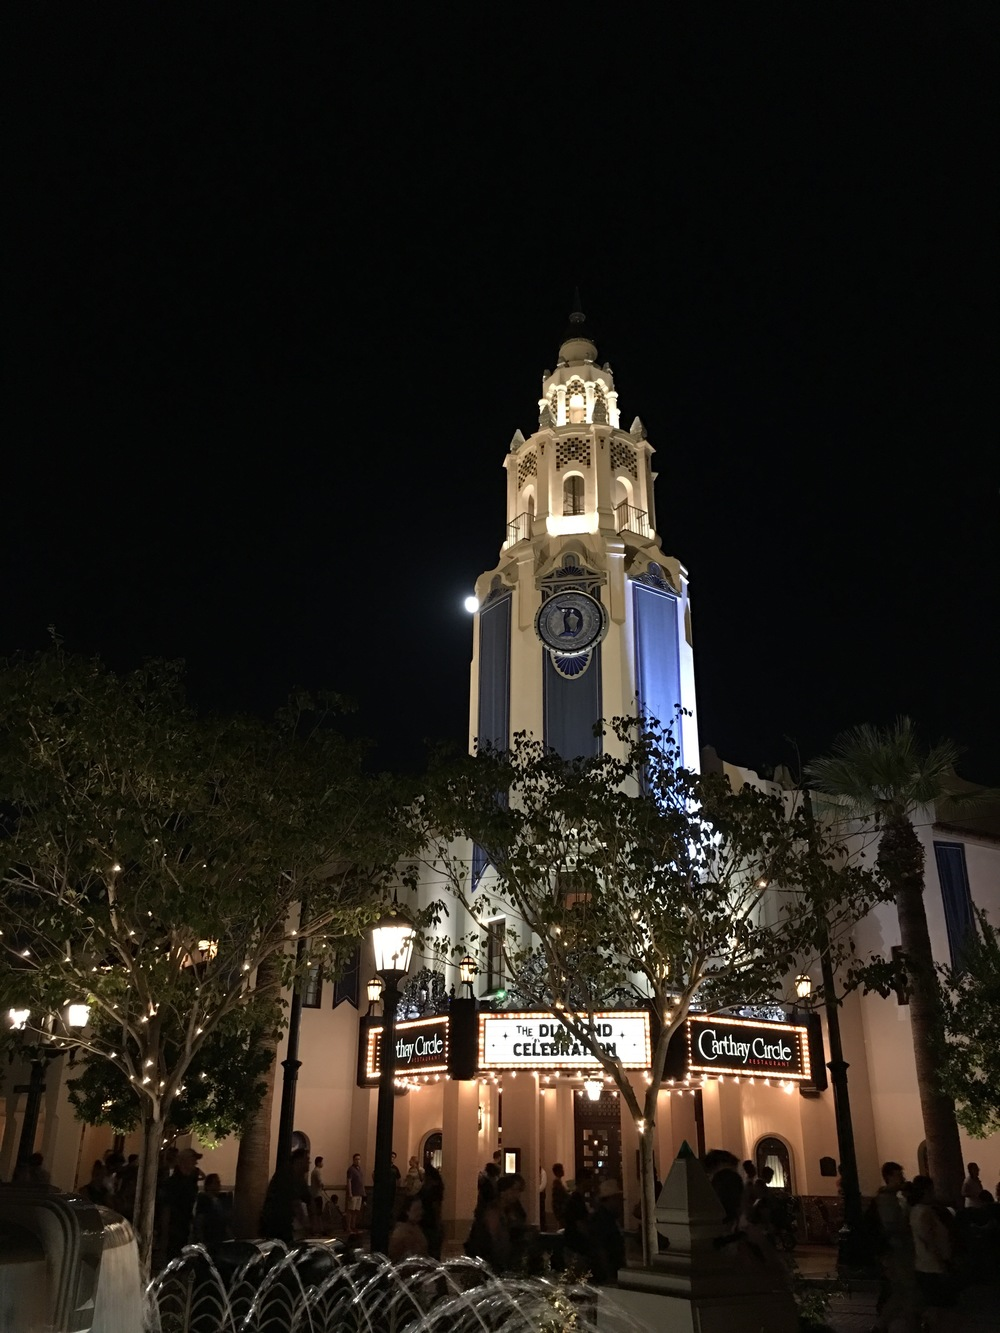 iPhone 6s Plus Carthay Circle